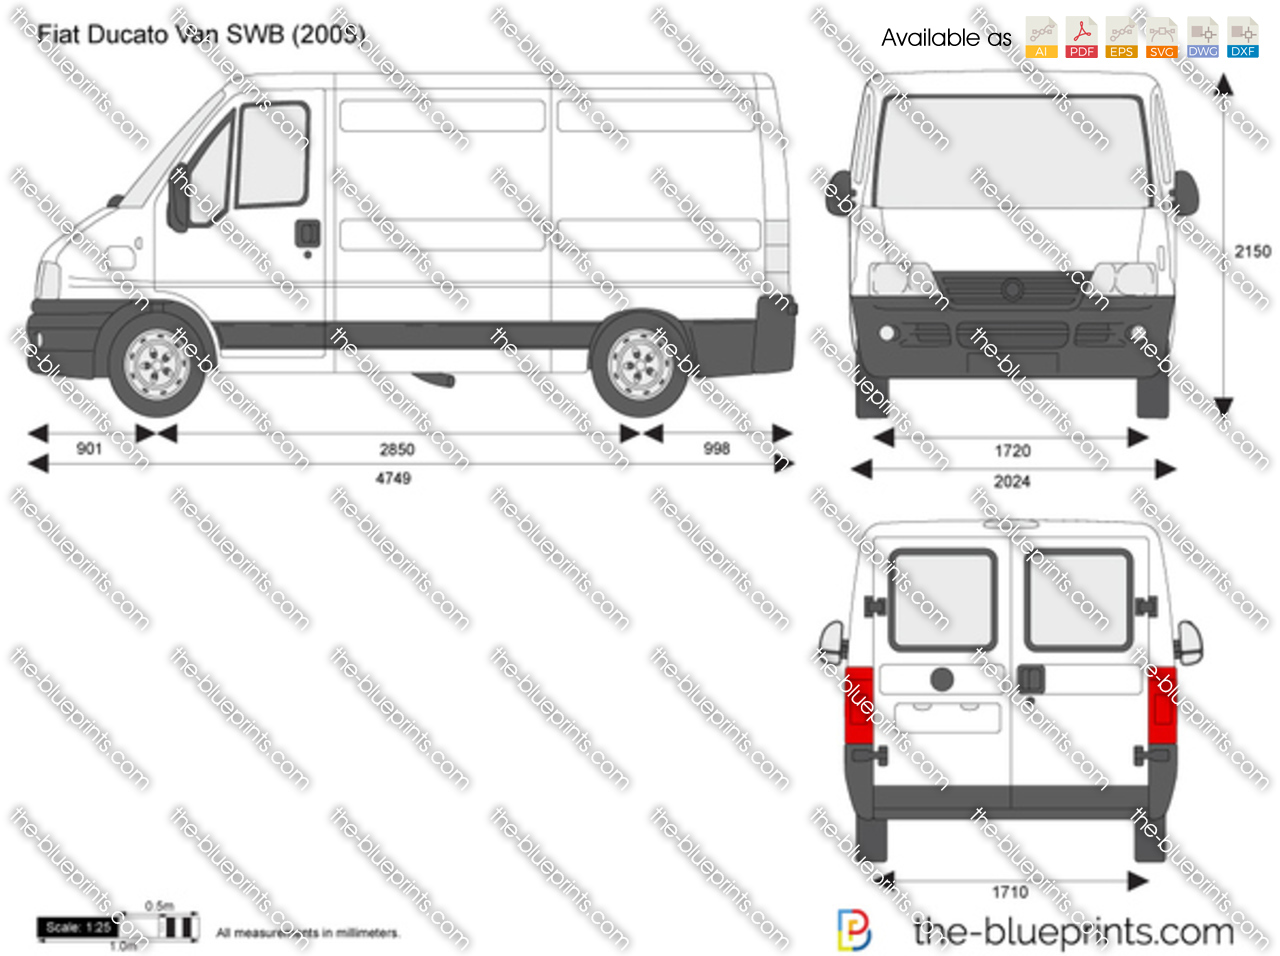 Fiat ducato van swb on ford transit connect